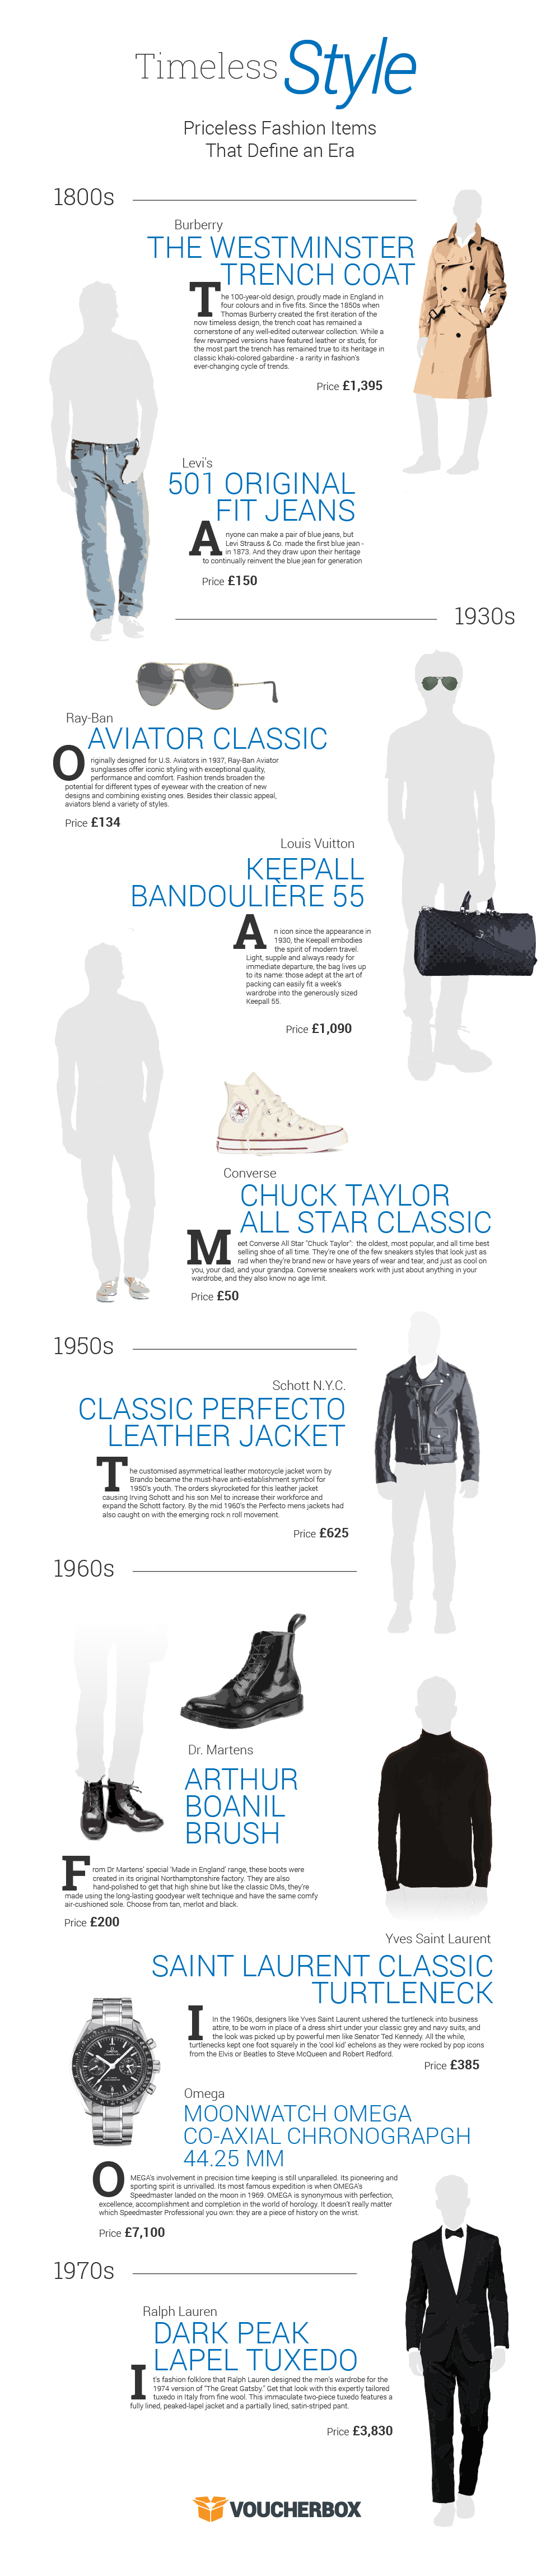 Iconic Men's Fashion